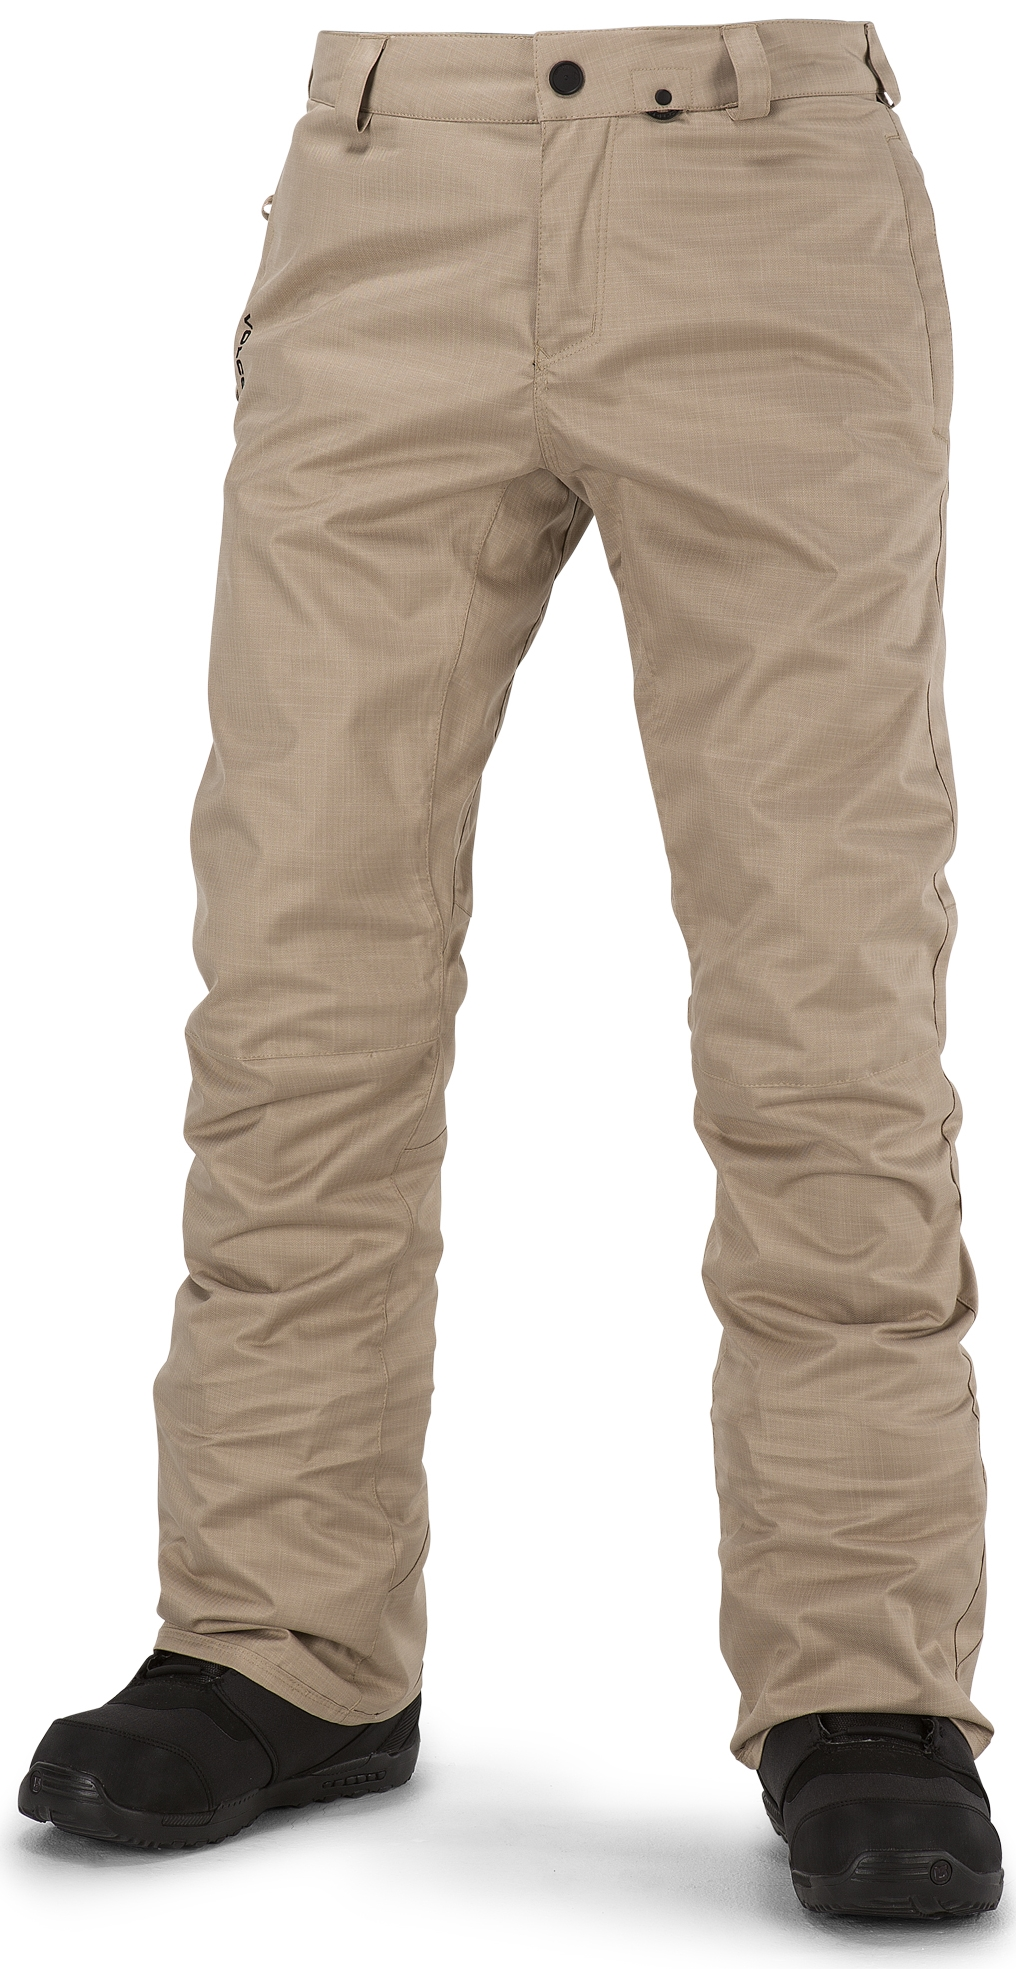 Volcom Klocker Tight Pant, $115